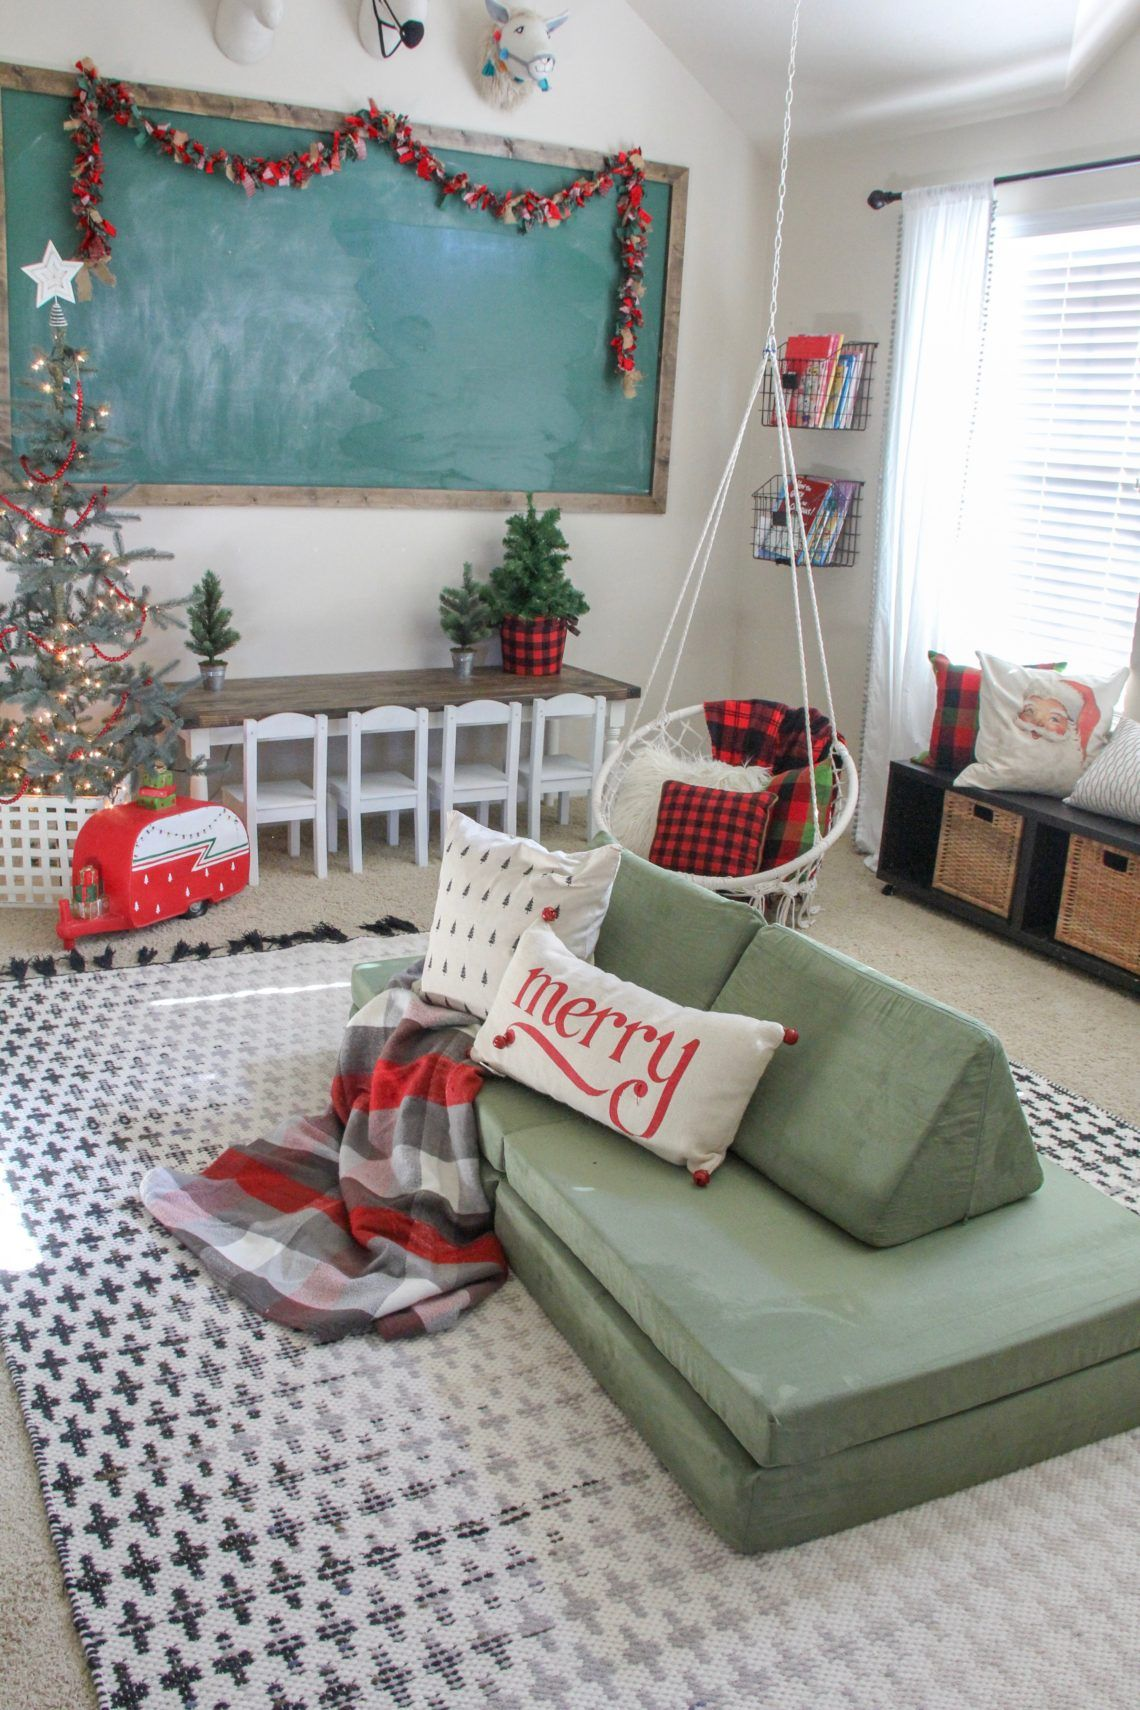 Holiday Home Tour - Life by Leanna decorate playroom for christmas  #christmas #christmastree #christmasdecor #farmhousechristmas #thegrinch